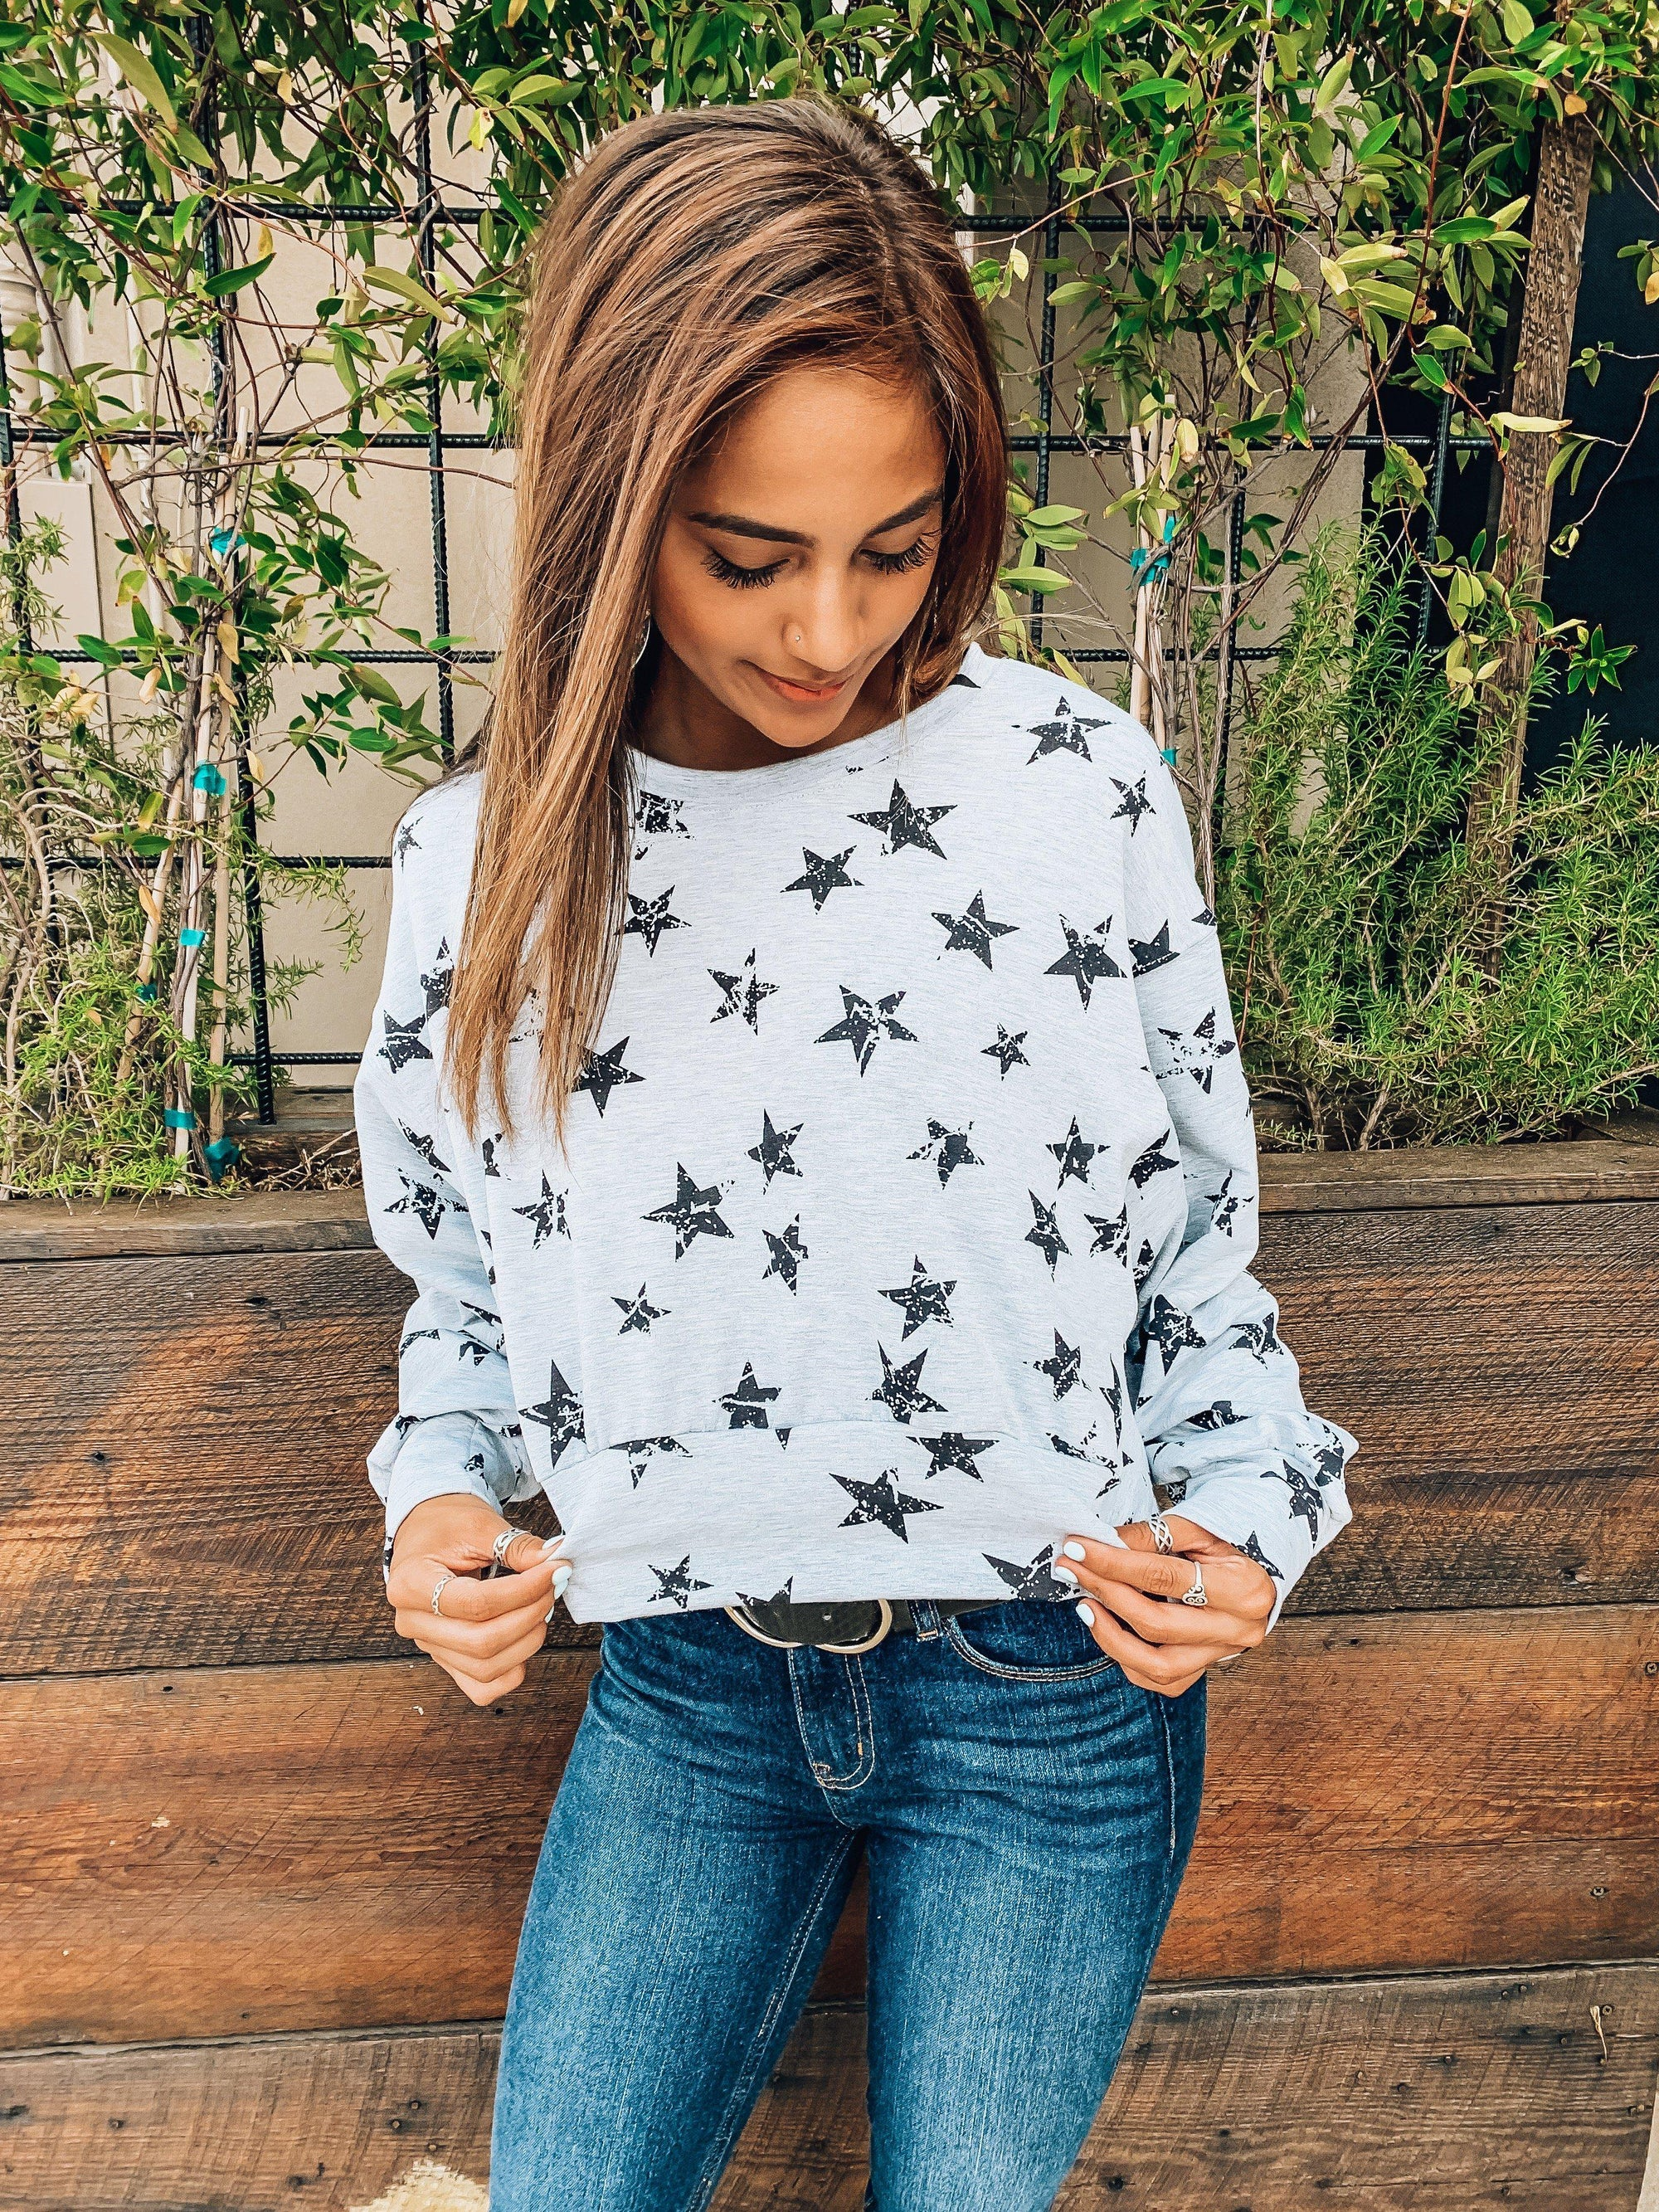 Stargazing Crop Top-Women's TOP-New Arrivals-Runway Seven